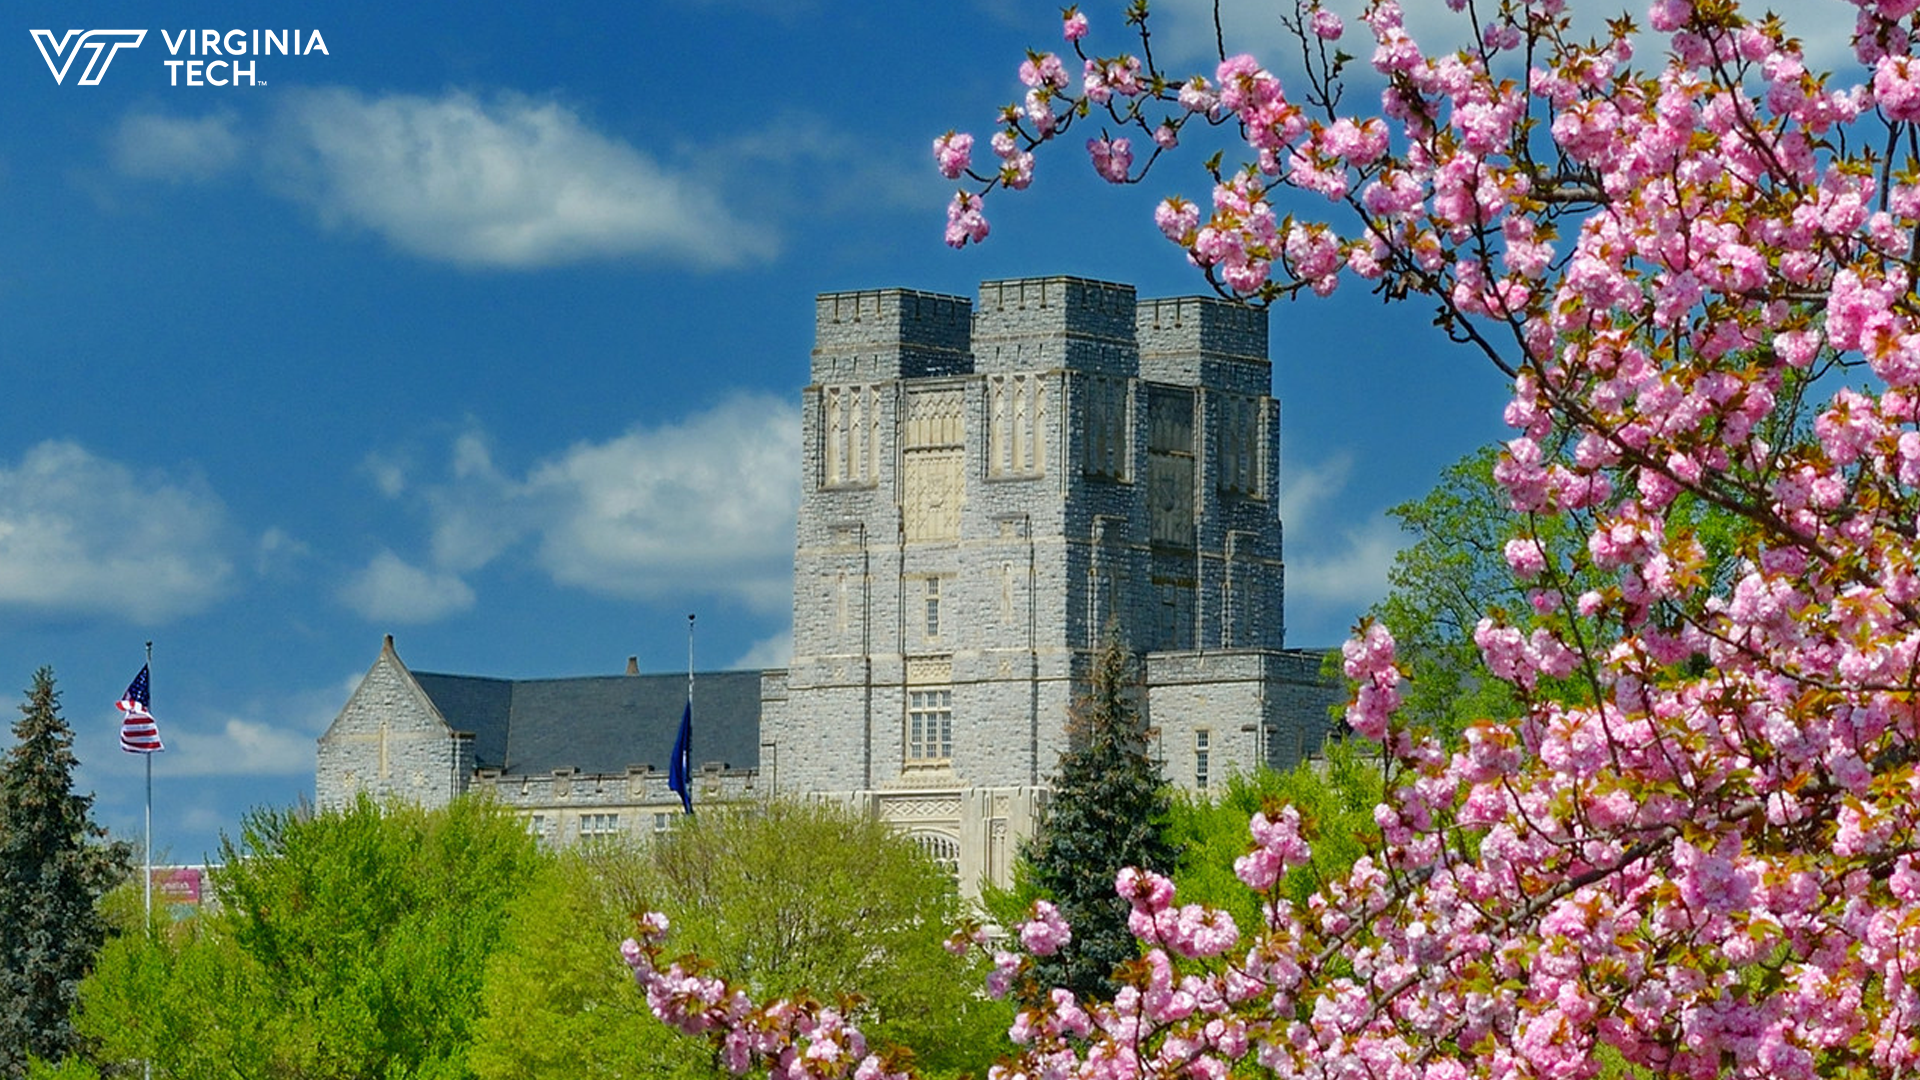 Burruss in Spring-1920x1080